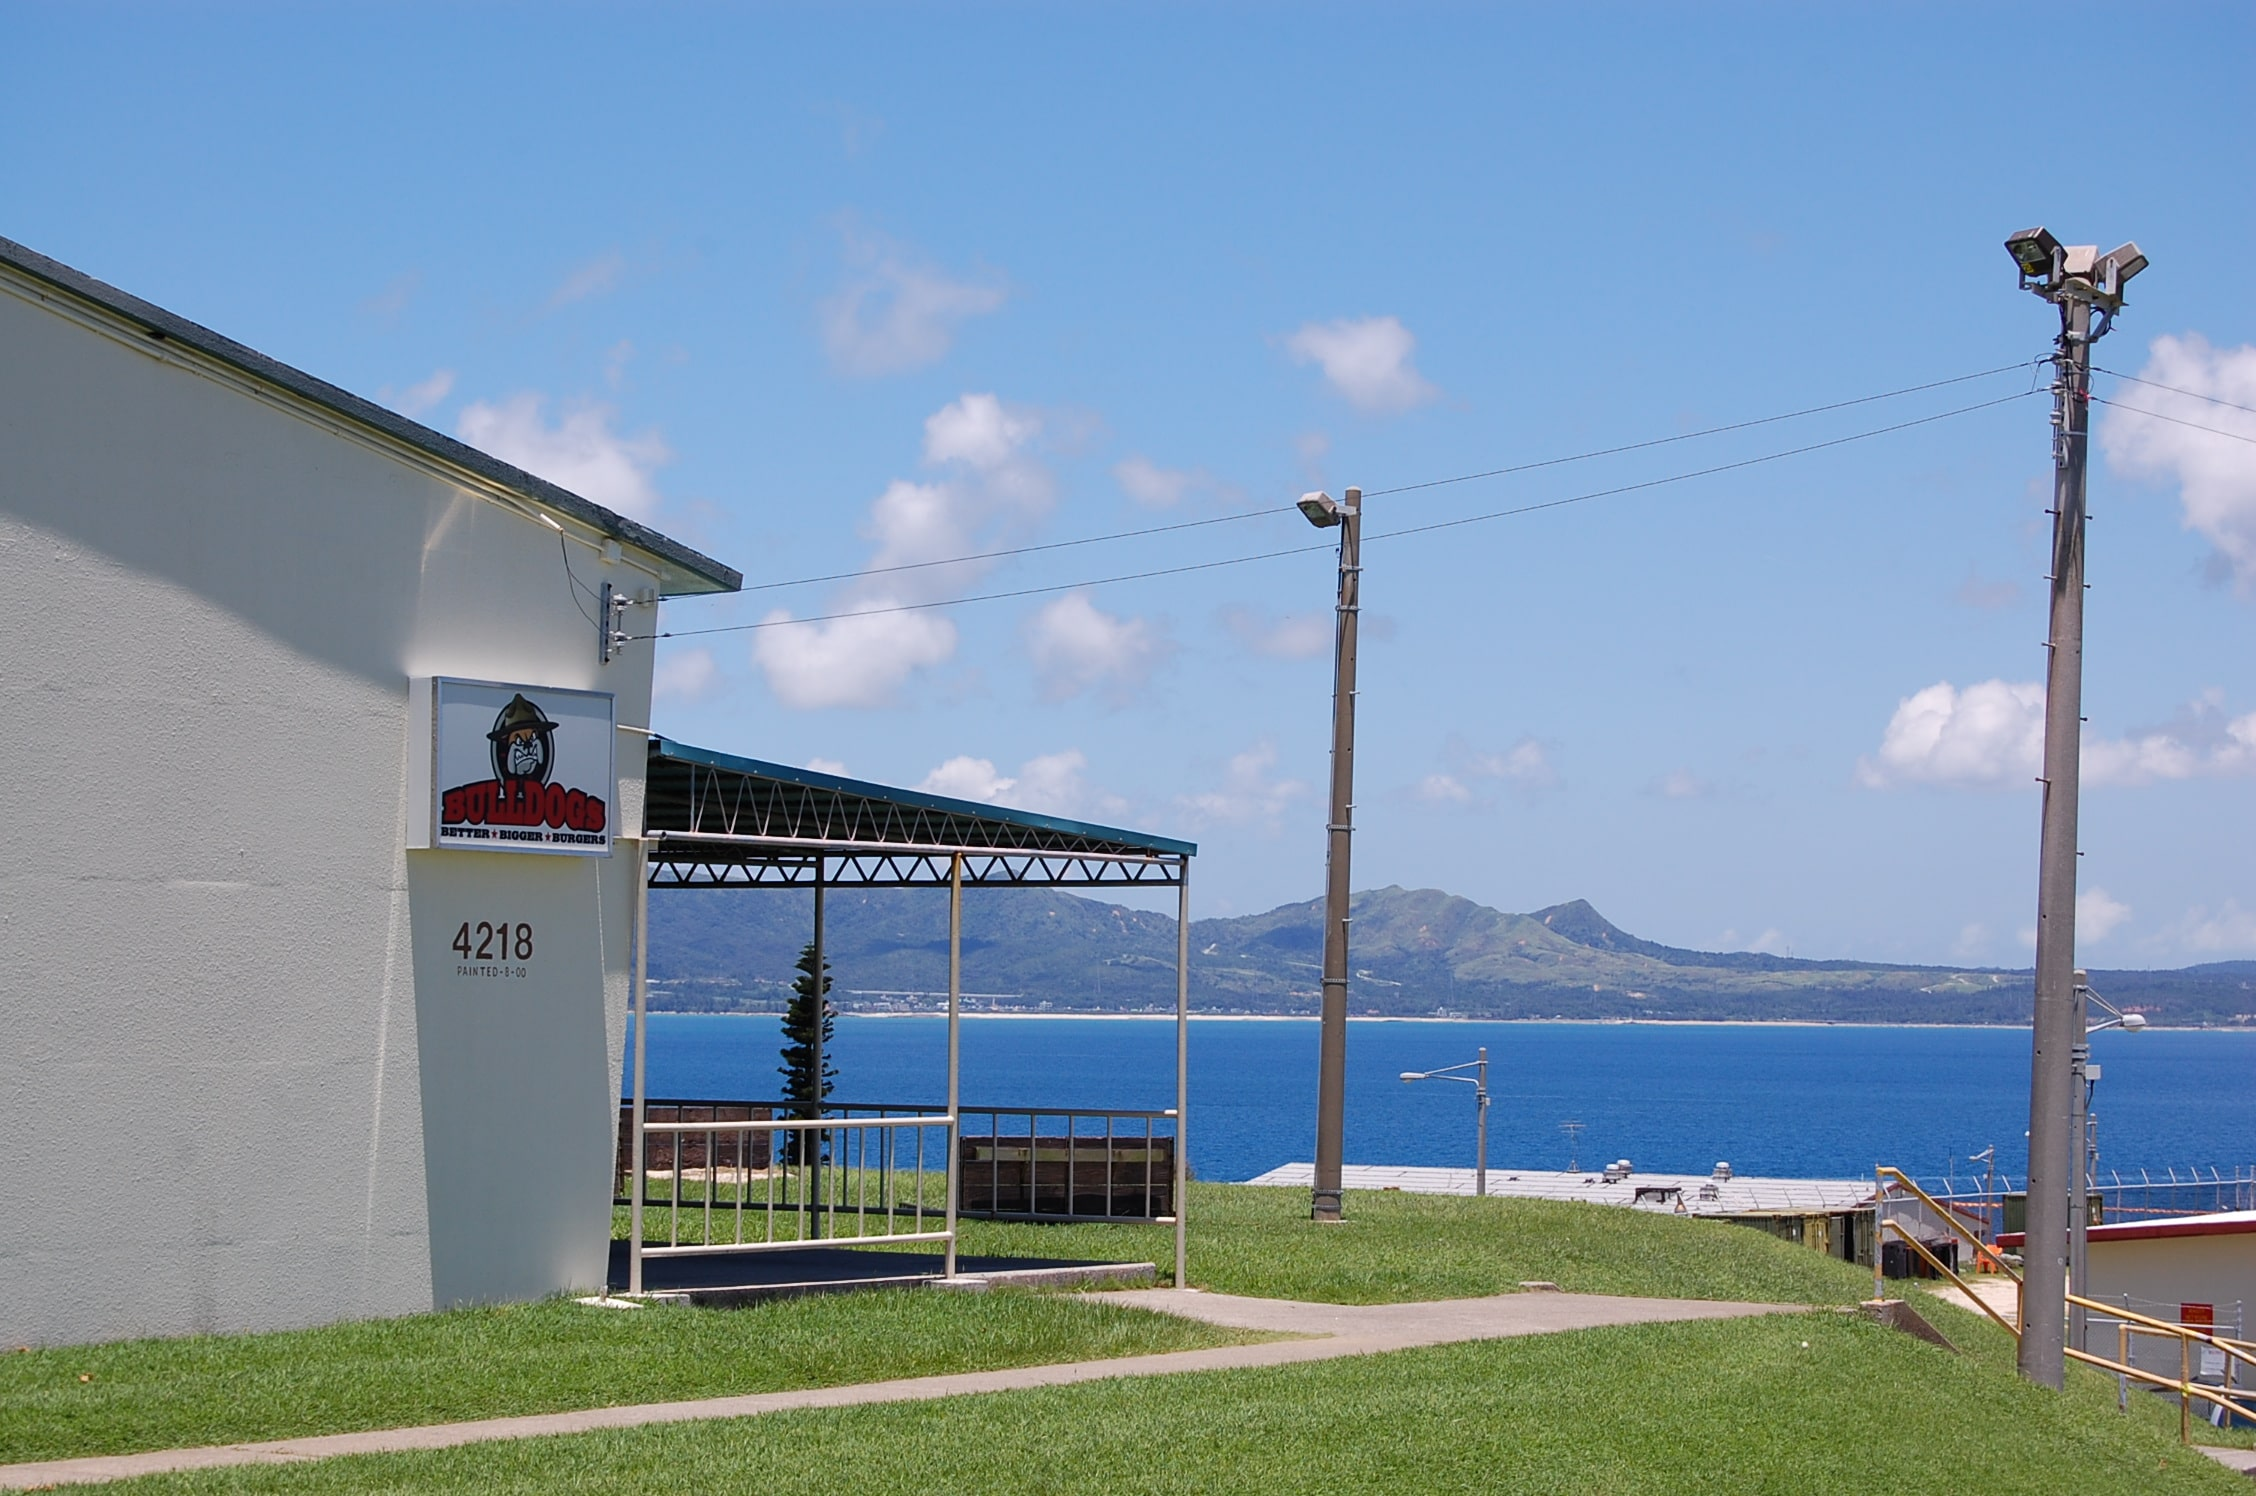 Camp Courtney | Okinawa Hai!